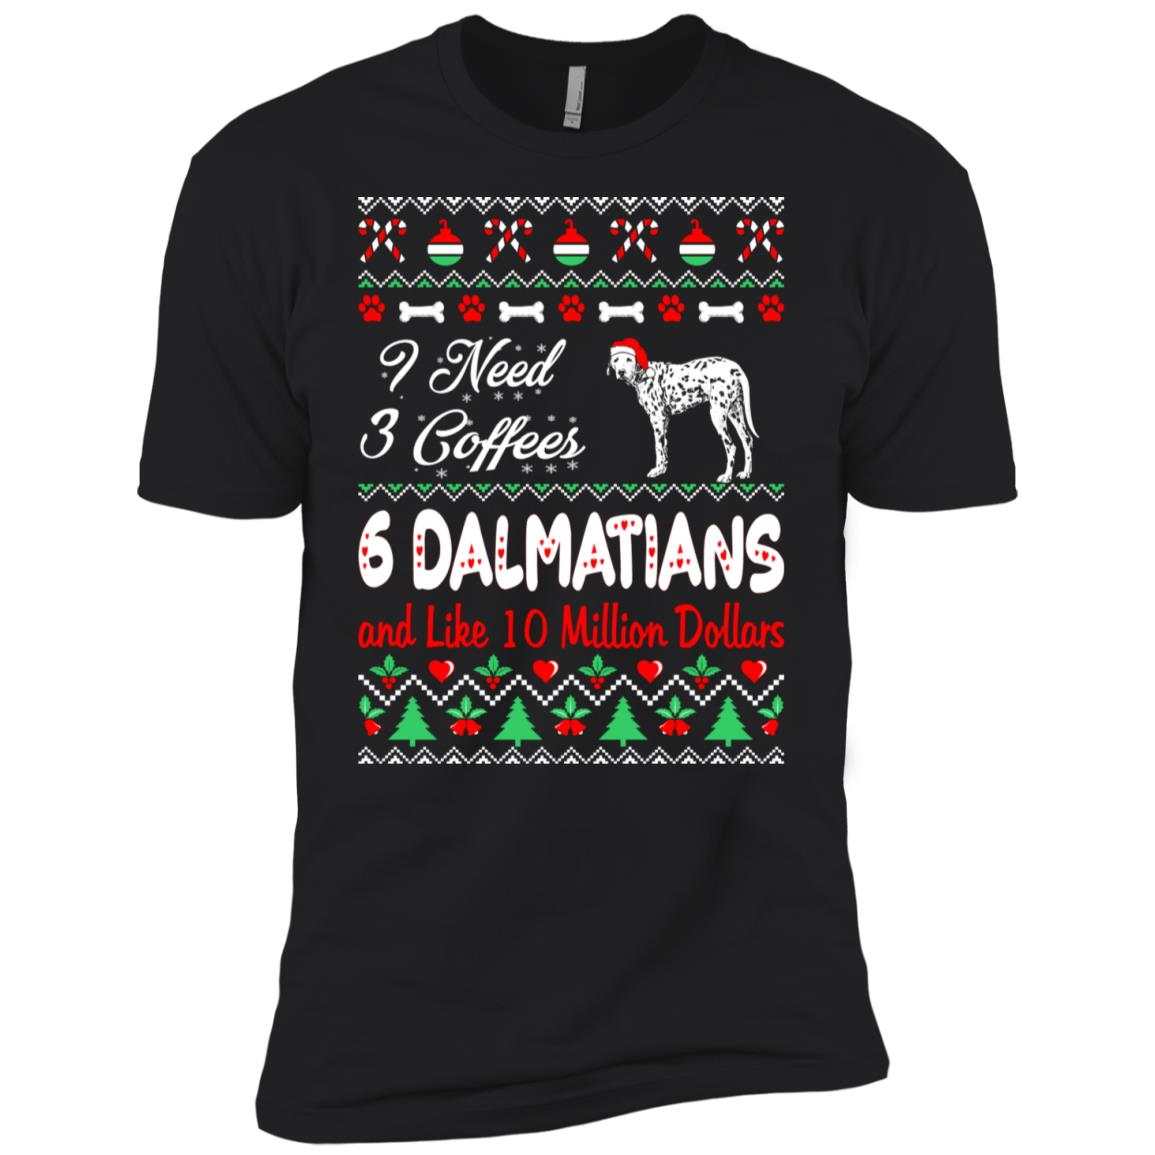 Need 3 Coffees 6 Dalmatians Christmas Ugly Sweater Men Short Sleeve T-Shirt